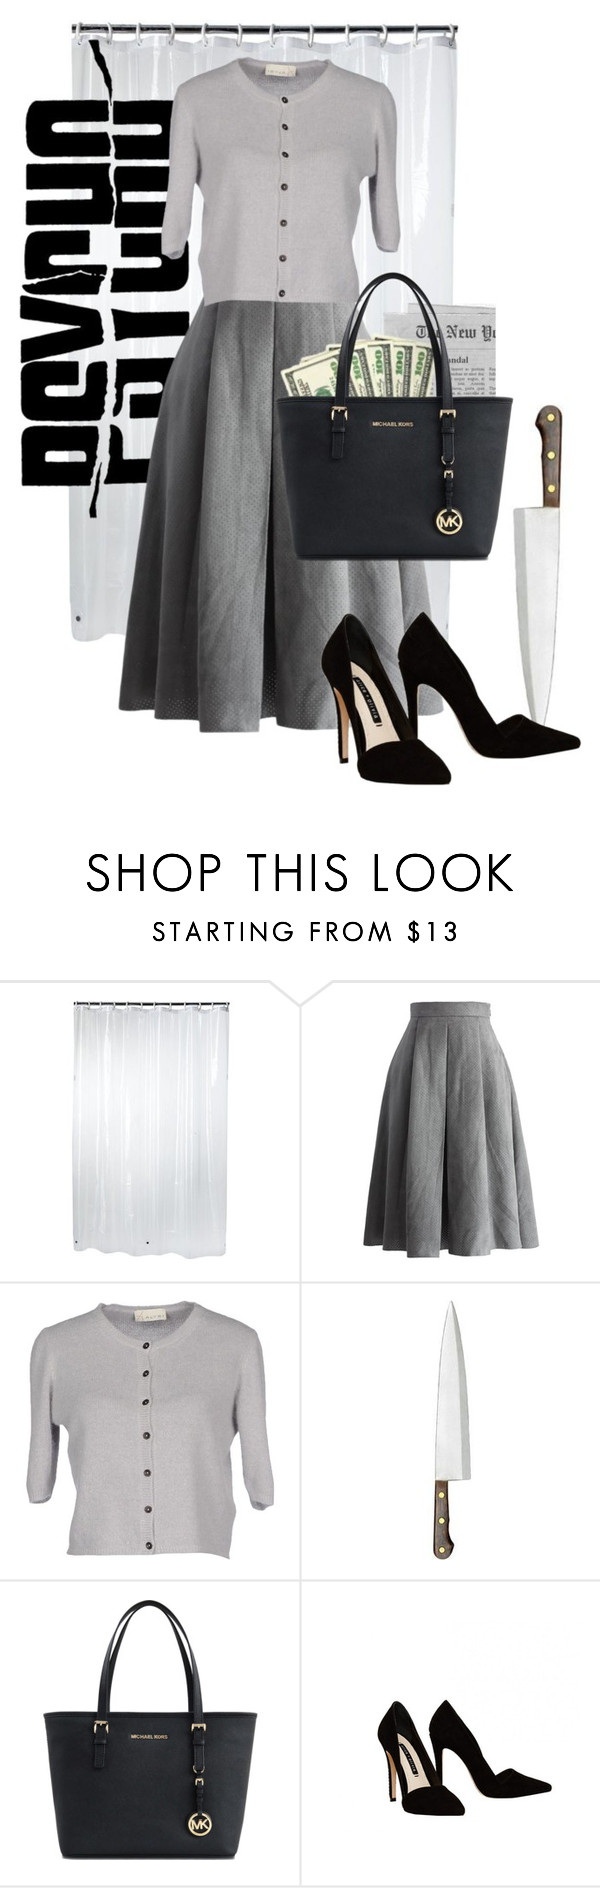 """Marion Crane from Psycho"" by laniocracy on Polyvore featuring Home Classics, Chicwish, Alysi, Michael Kors, Alice + Olivia and hitchcock"